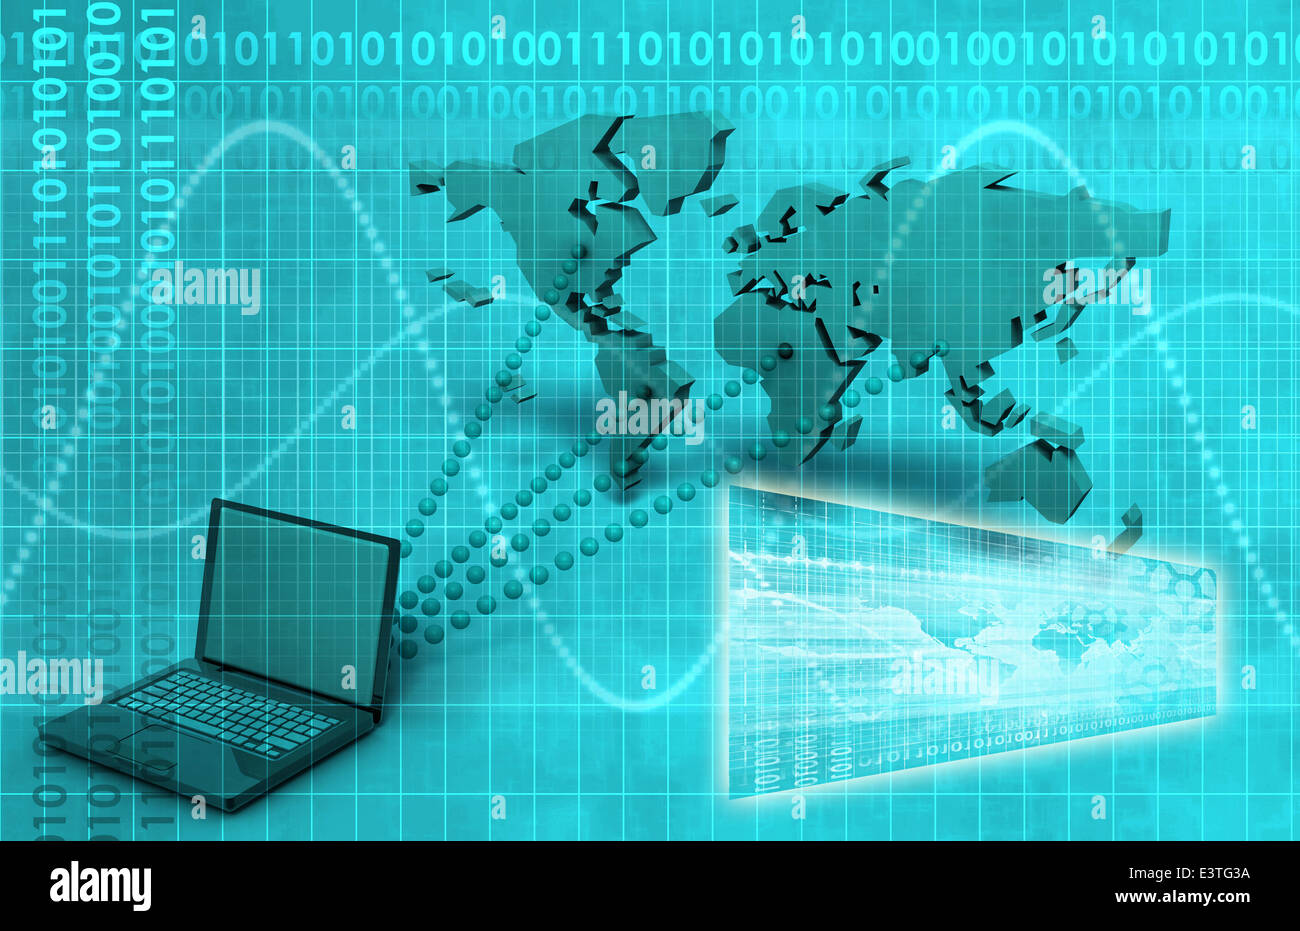 broadcast engineering and online tracker as art stock photo